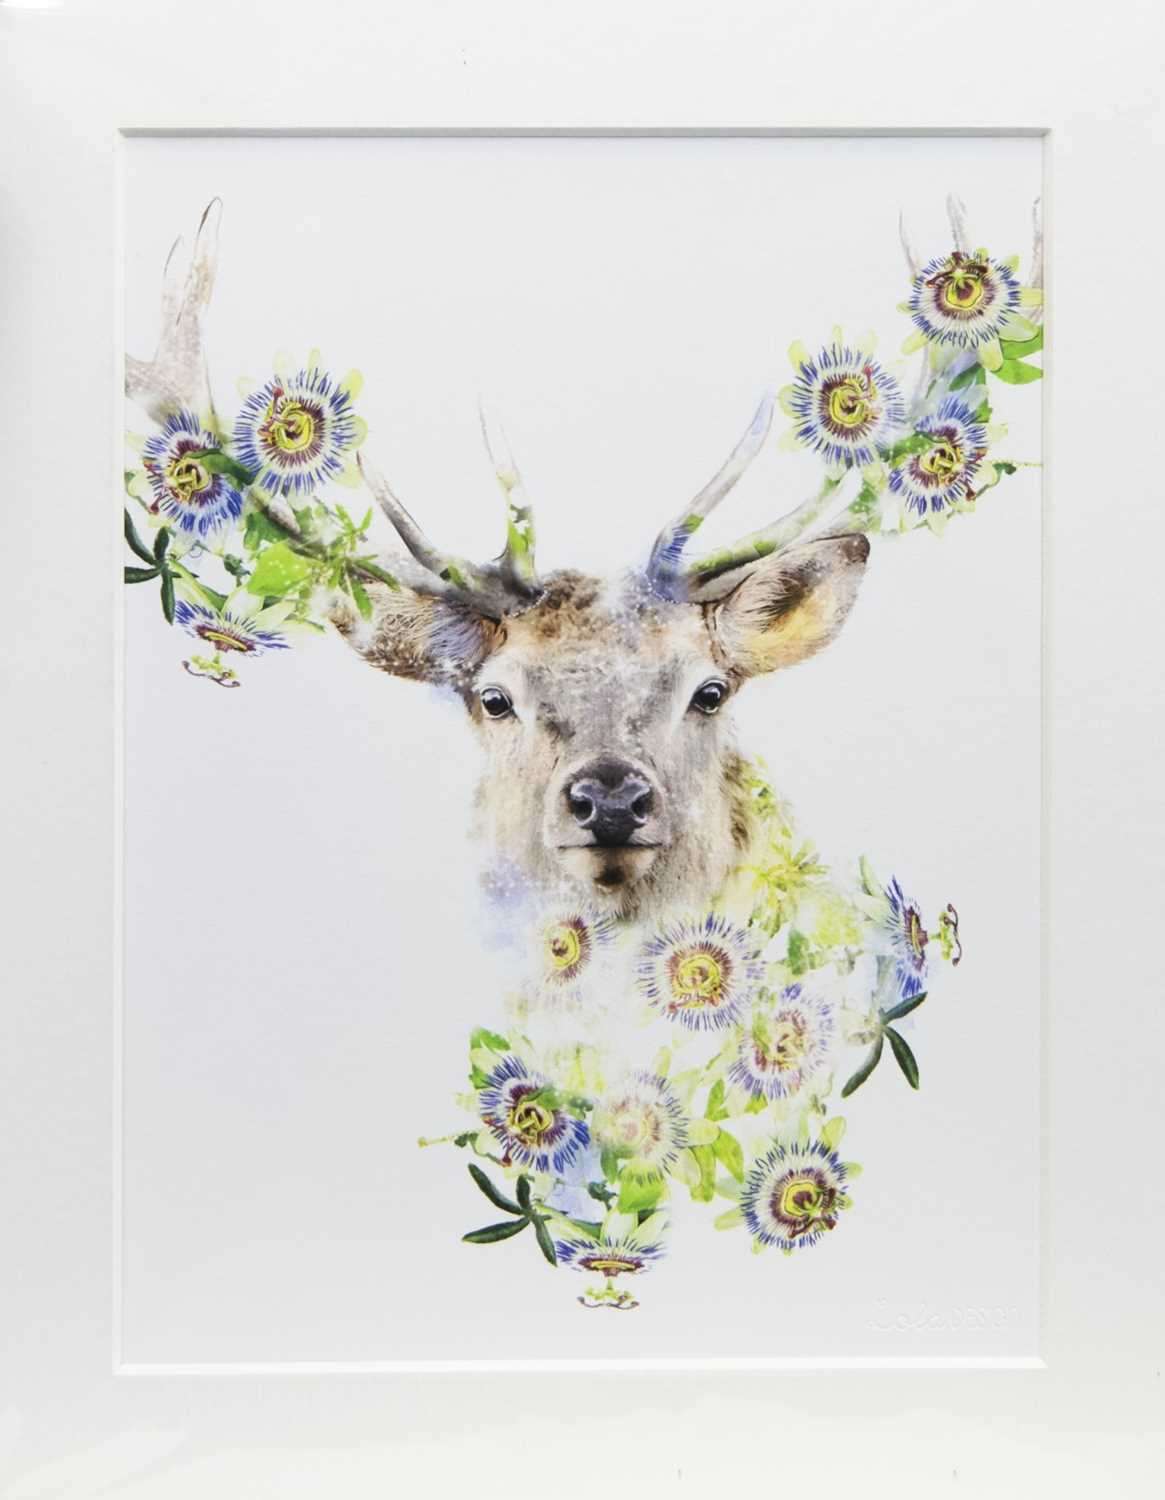 Lot 89 - STAG 2, A PRINT BY LOLA DESIGN